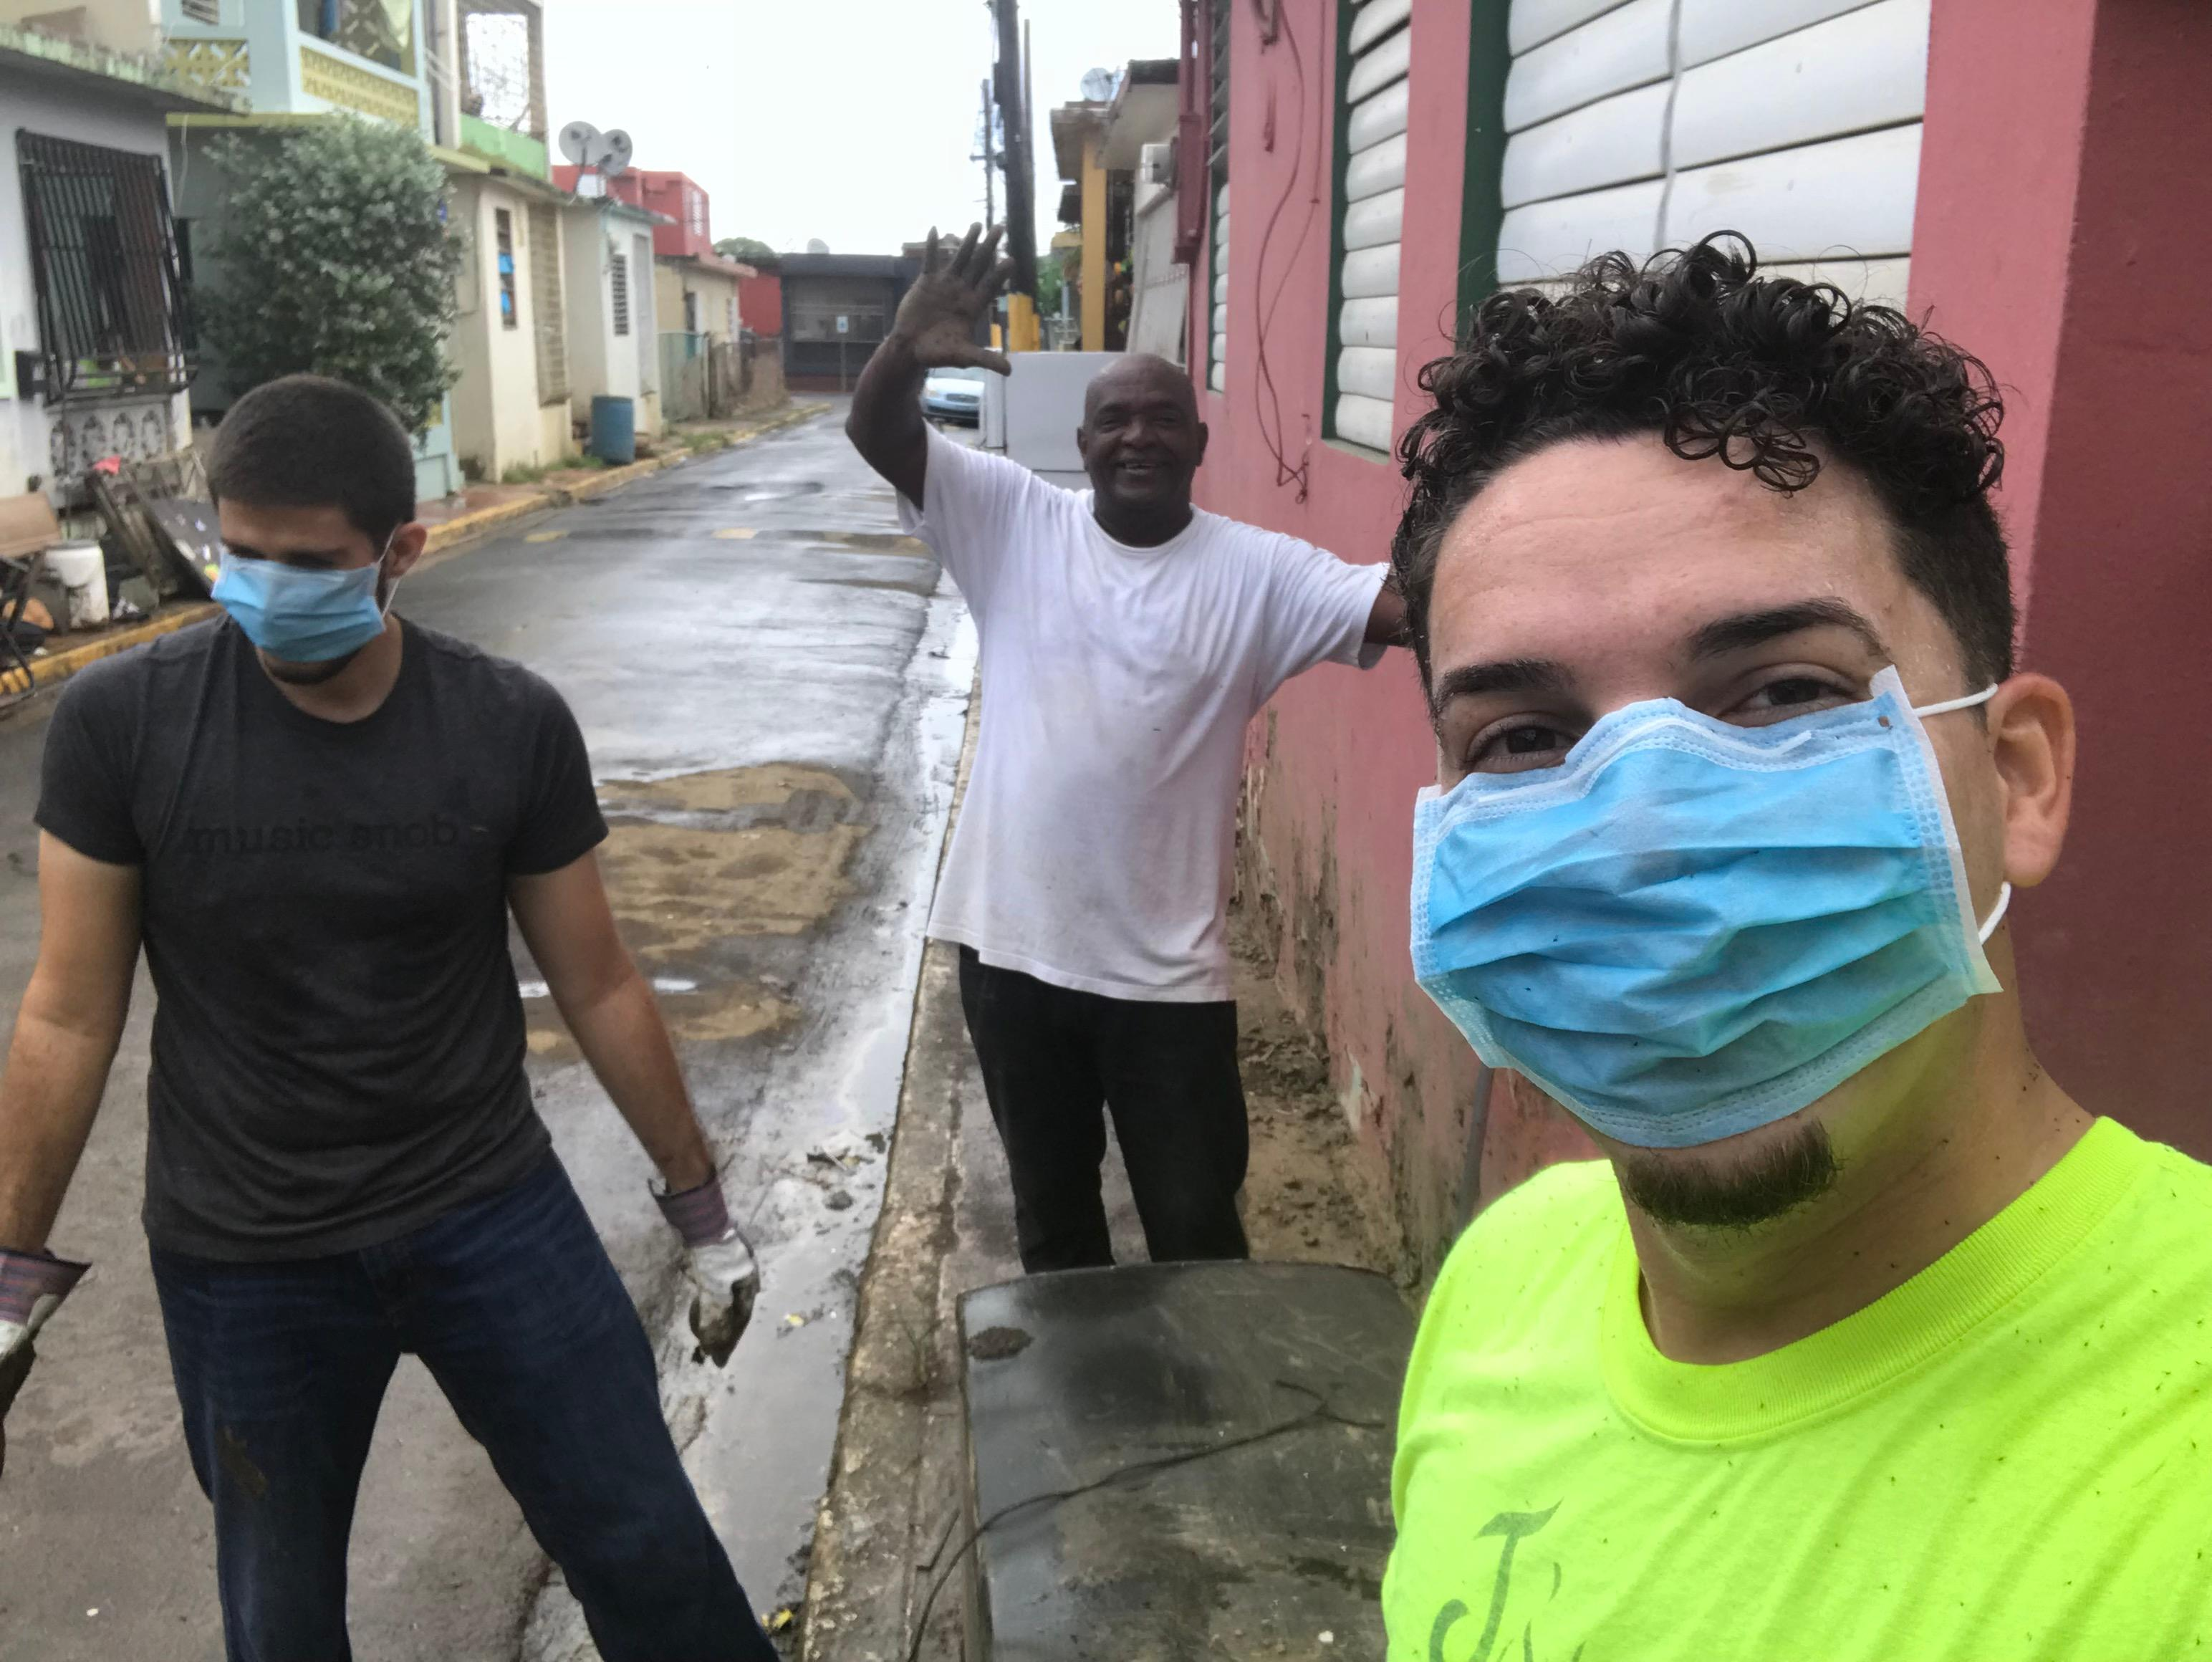 A selfie while cleaning houses in Toa Baja. Left to right: Matos-Moreno's best friend Alfonso, community member and volunteer Ruben, and Matos-Moreno. Alfonso cancelled a Thanksgiving trip to Miami to lend a hand.